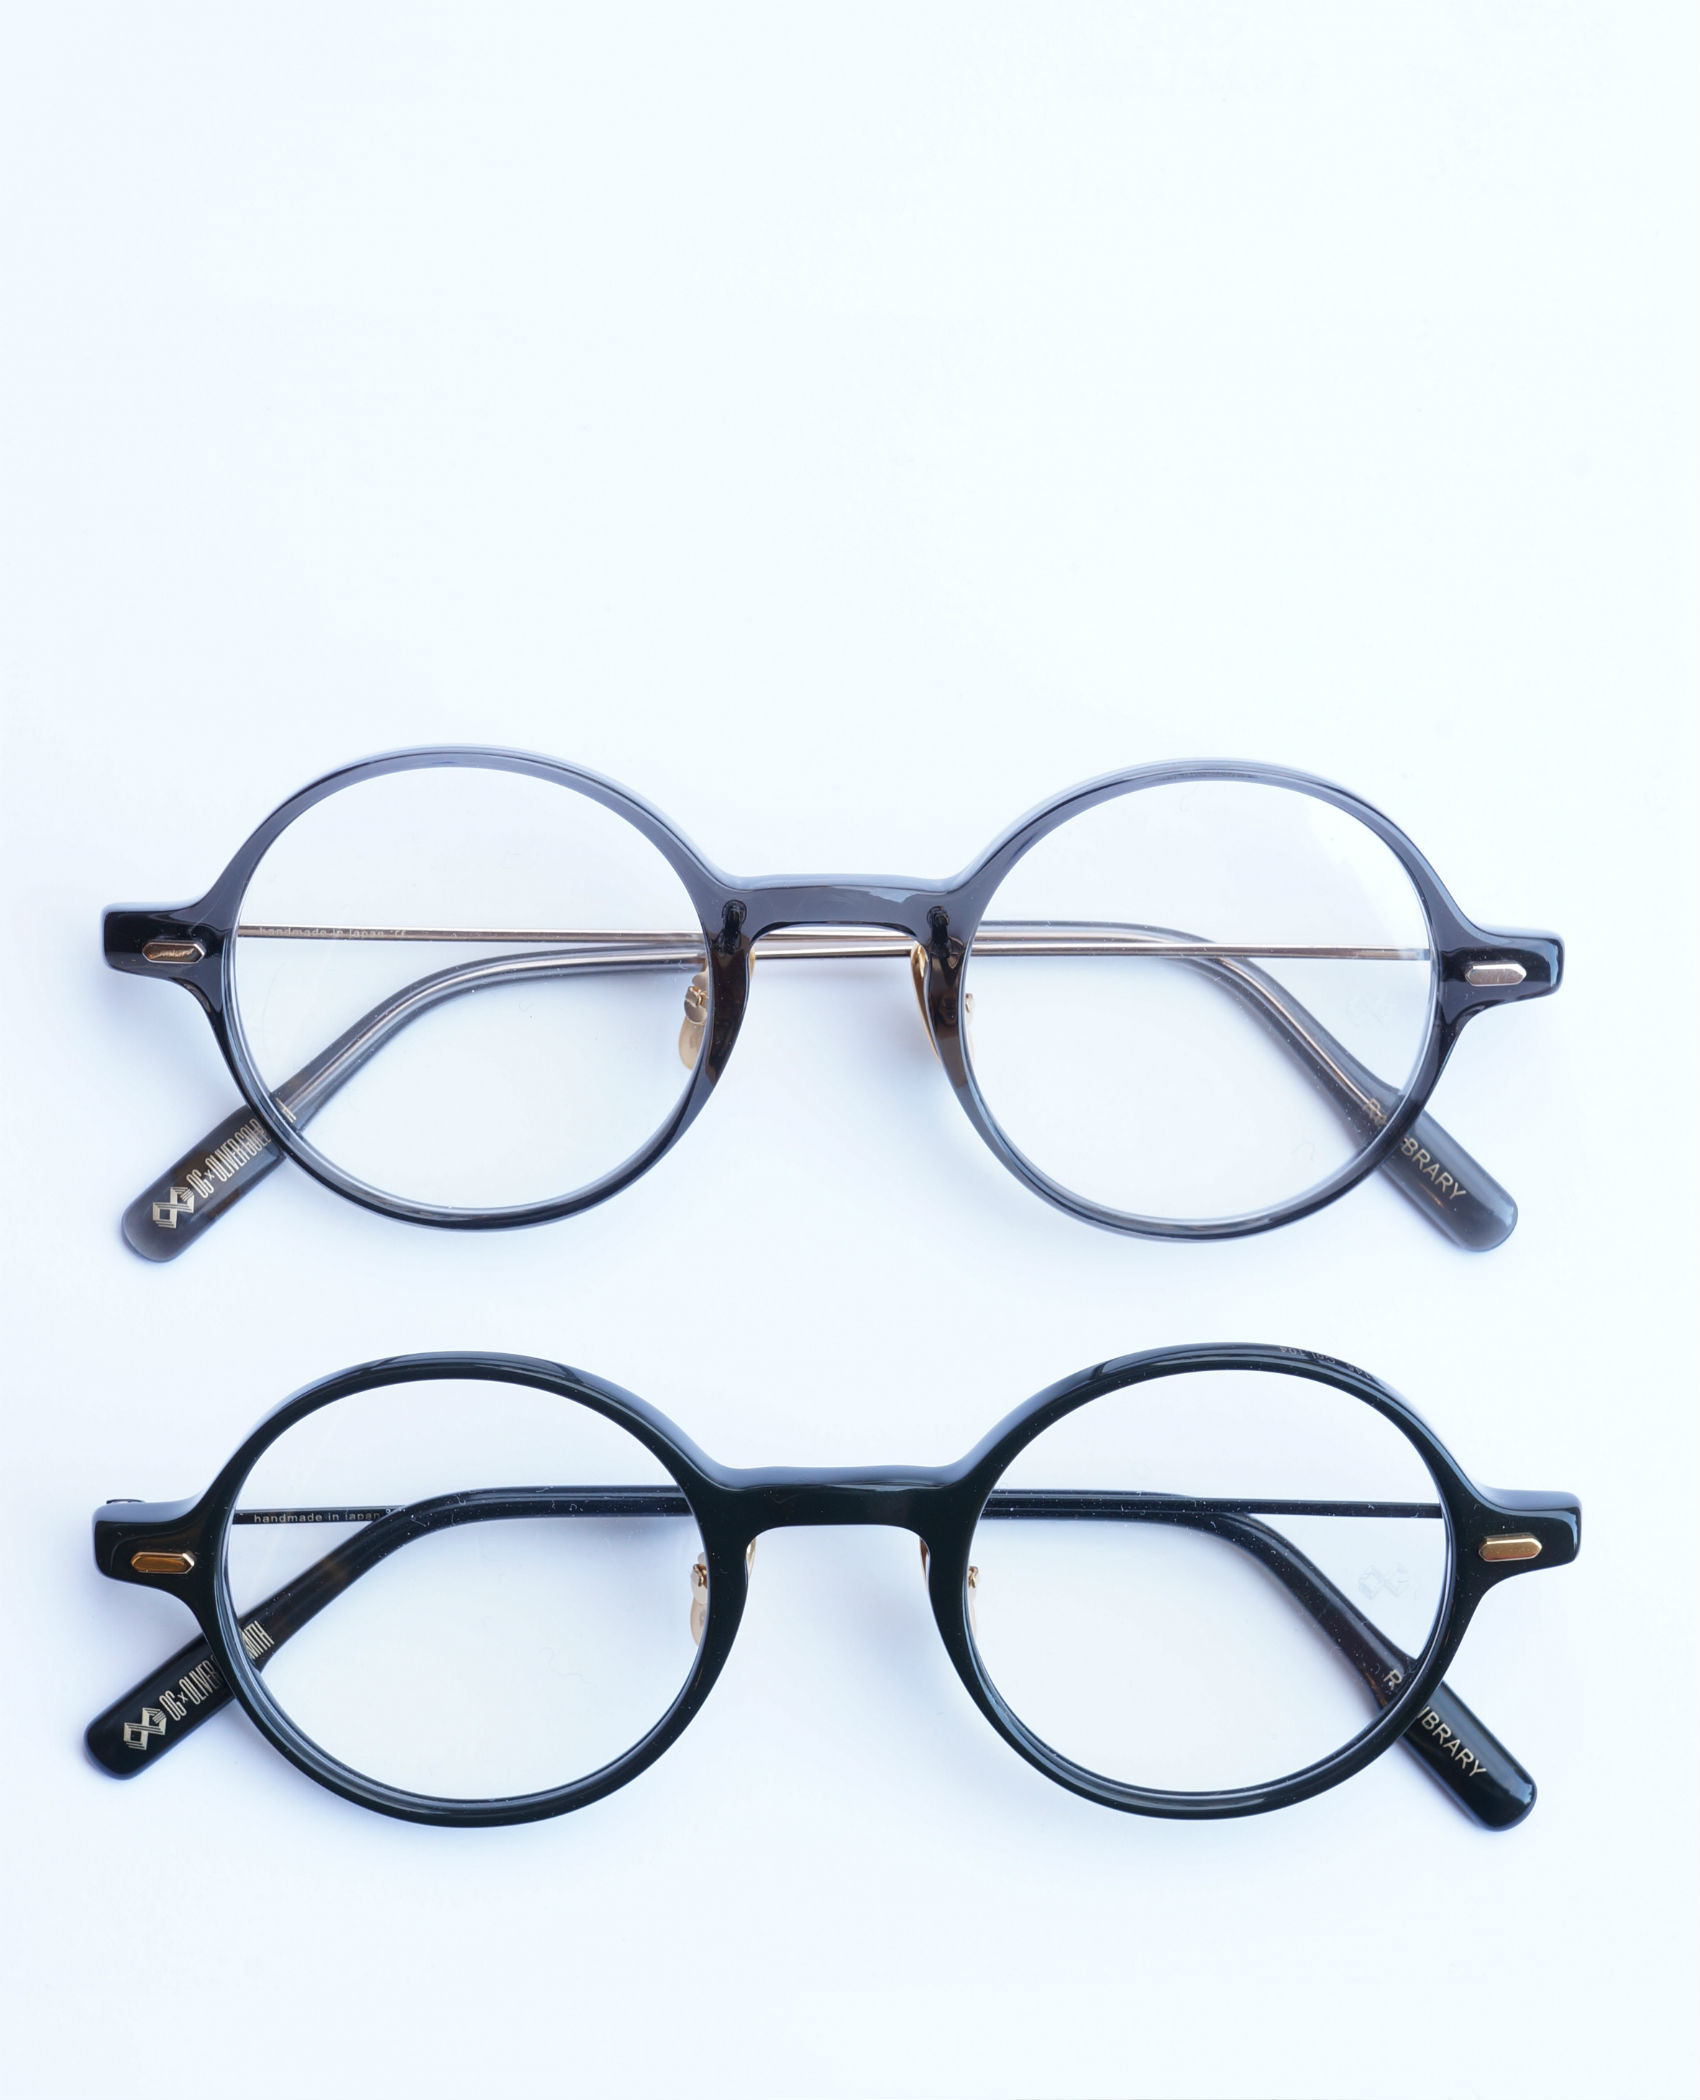 OG×OLIVER GOLDSMITH Re:LIBRARY